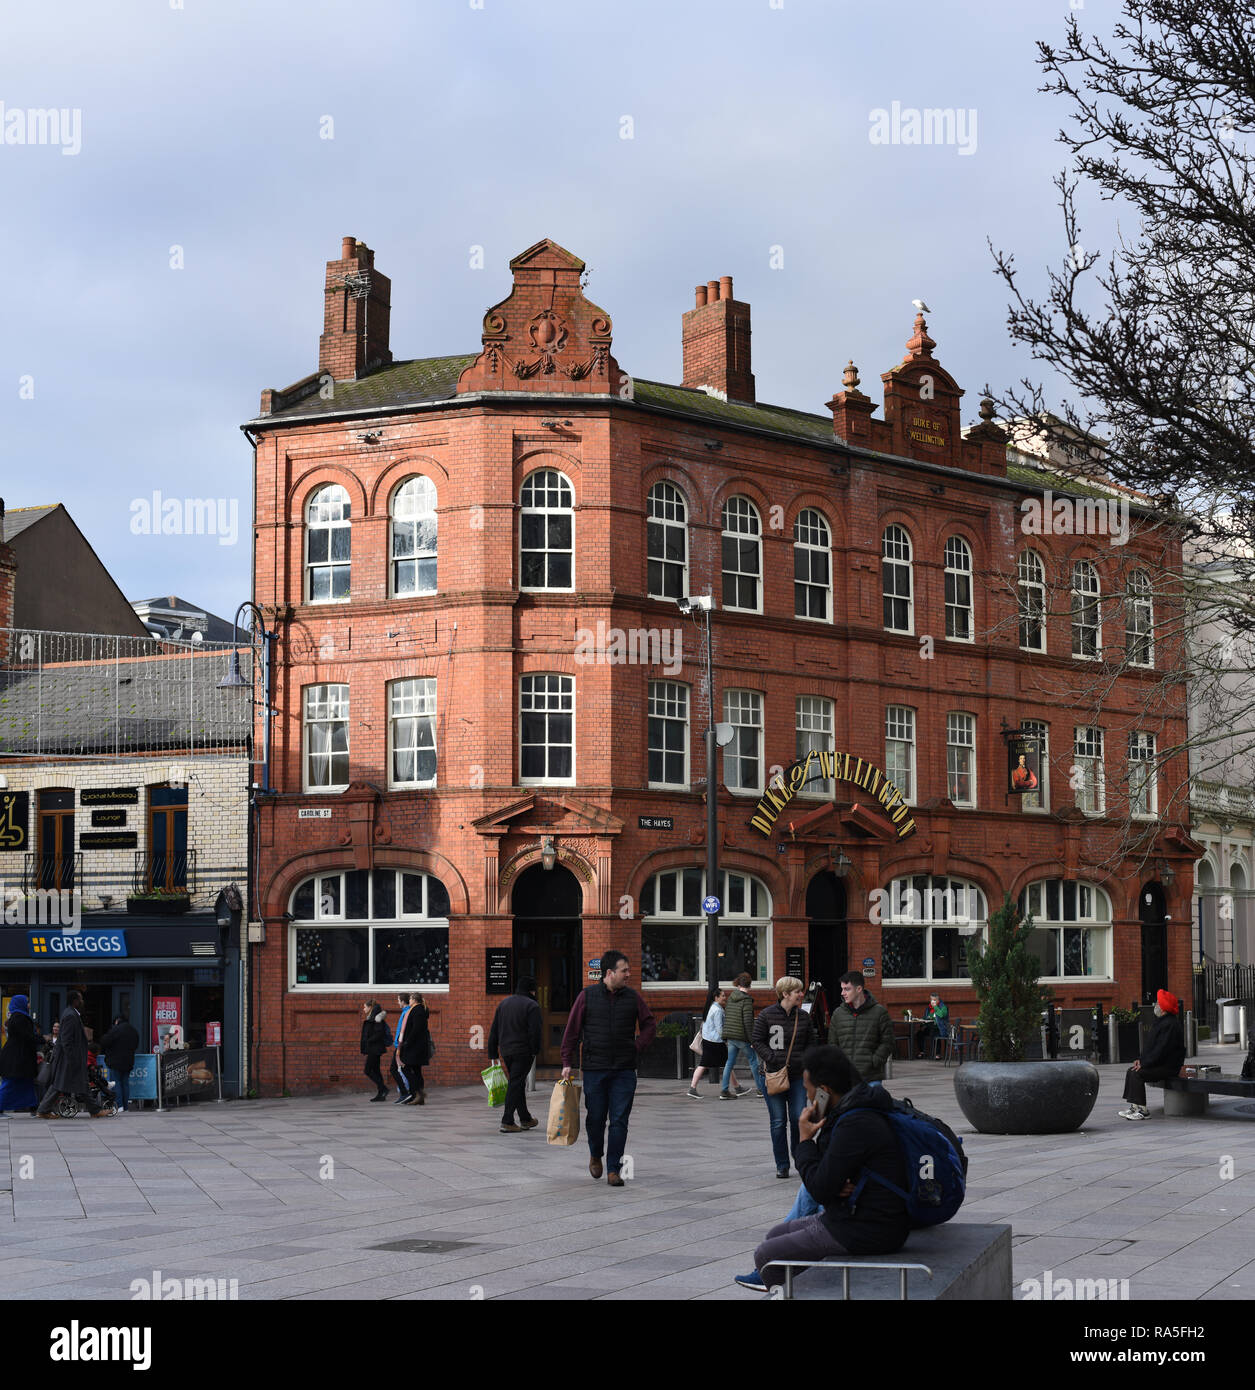 Duke of Wellington in 2018 a Brains pub number 3758 - Stock Image